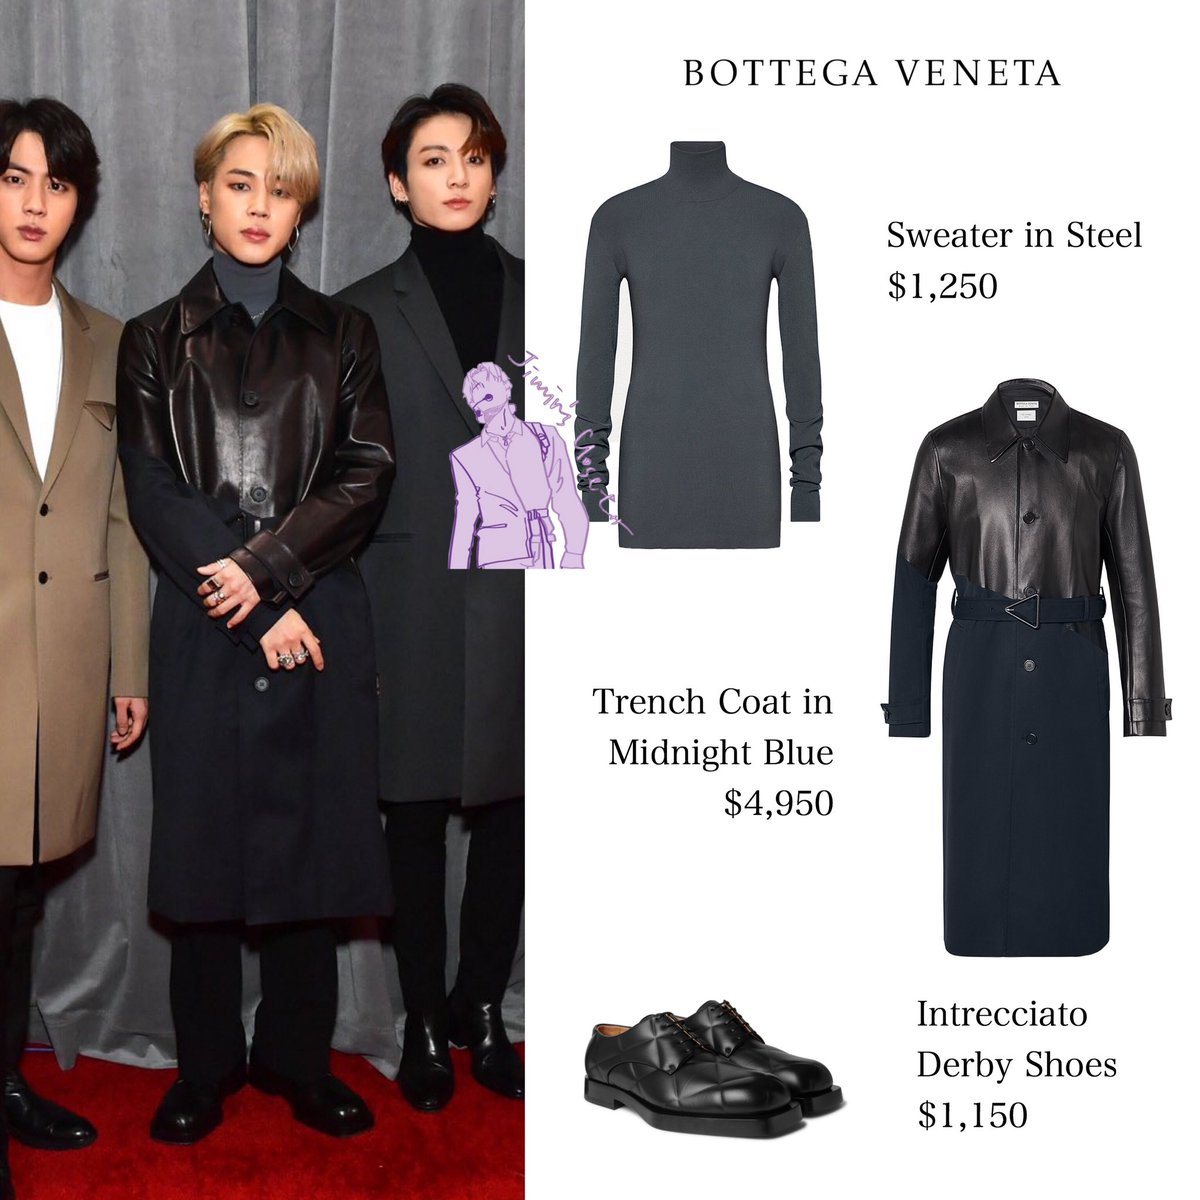 200126 62nd annual grammy awards red carpet bottega veneta kpop profiles makestar 200126 62nd annual grammy awards